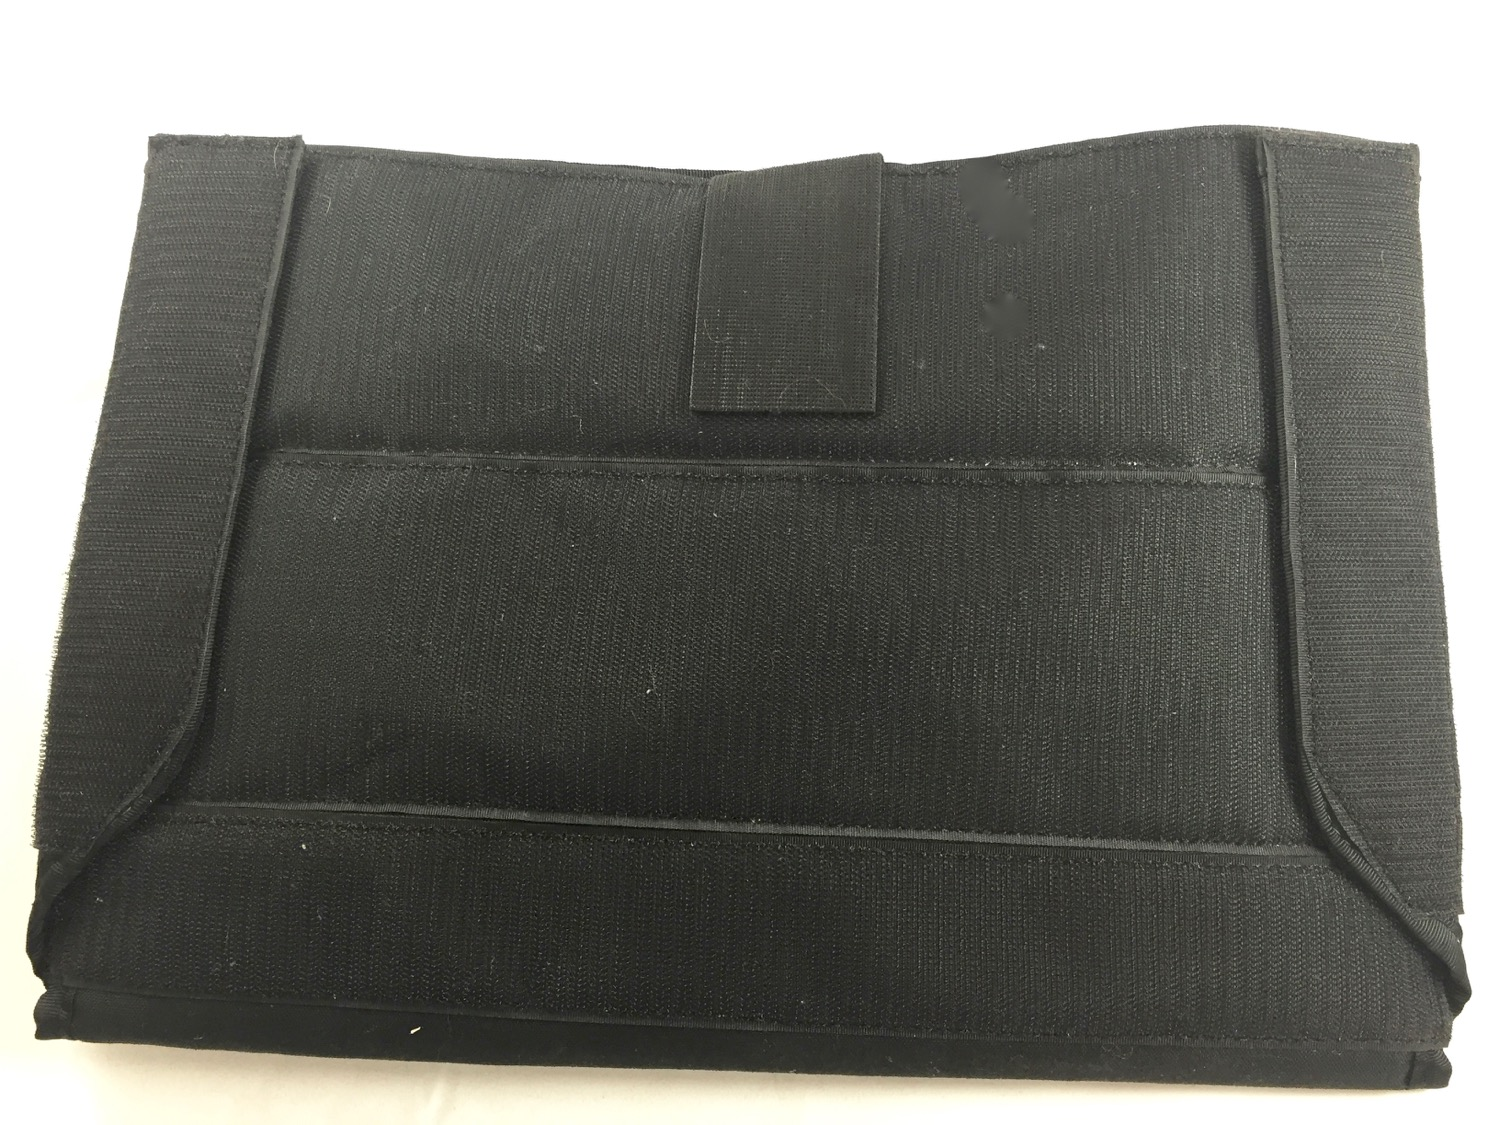 Simple padded sleeve to protect your laptop.